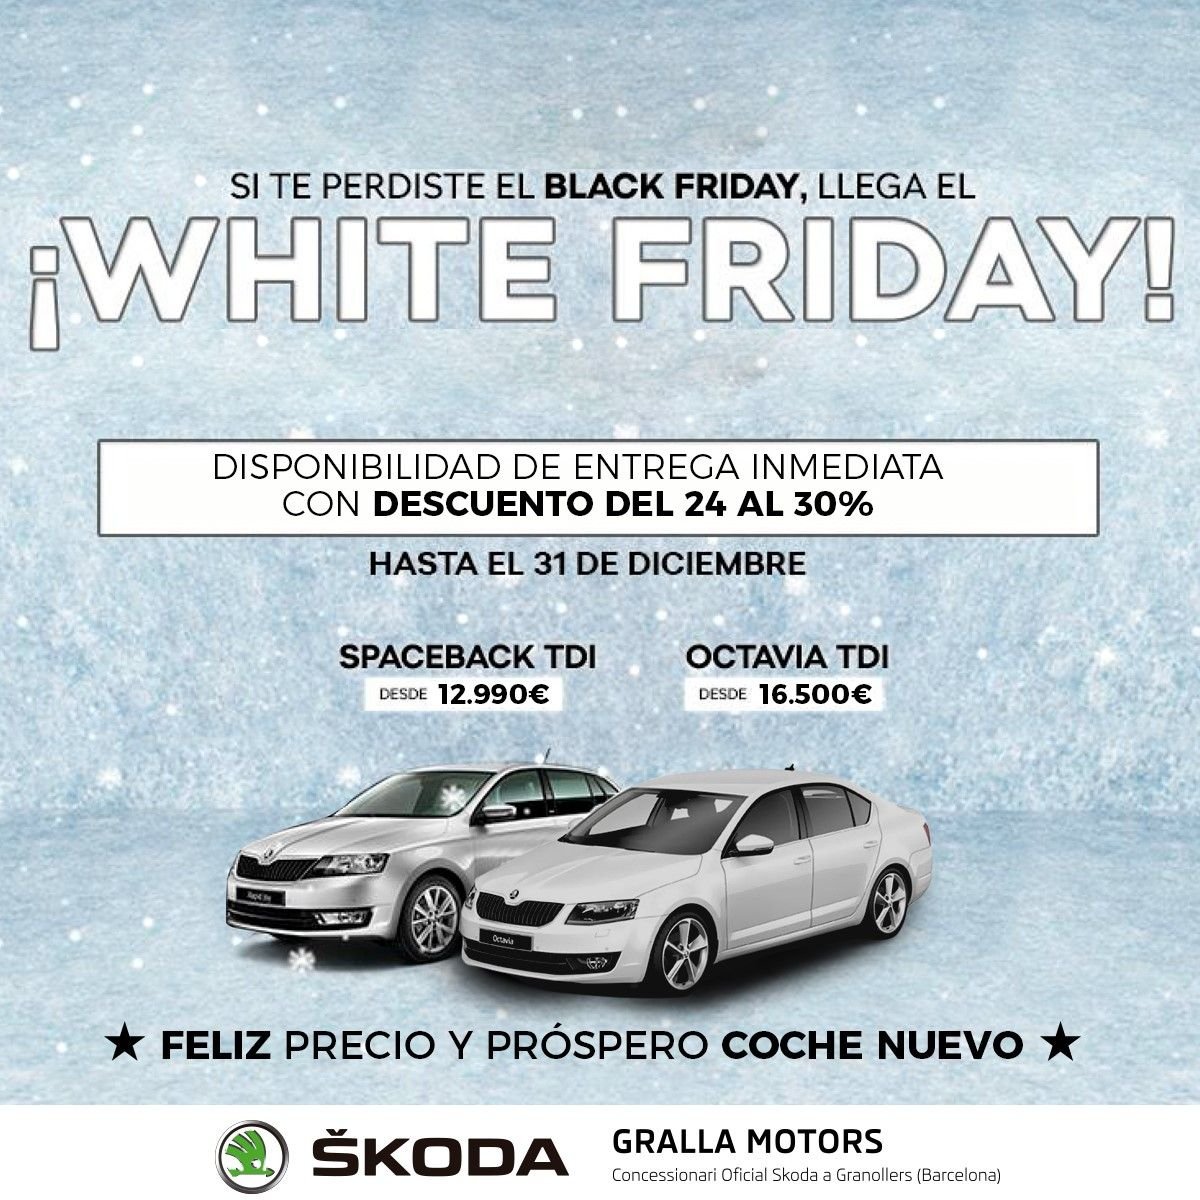 Arriba el White Friday a Gralla Motors